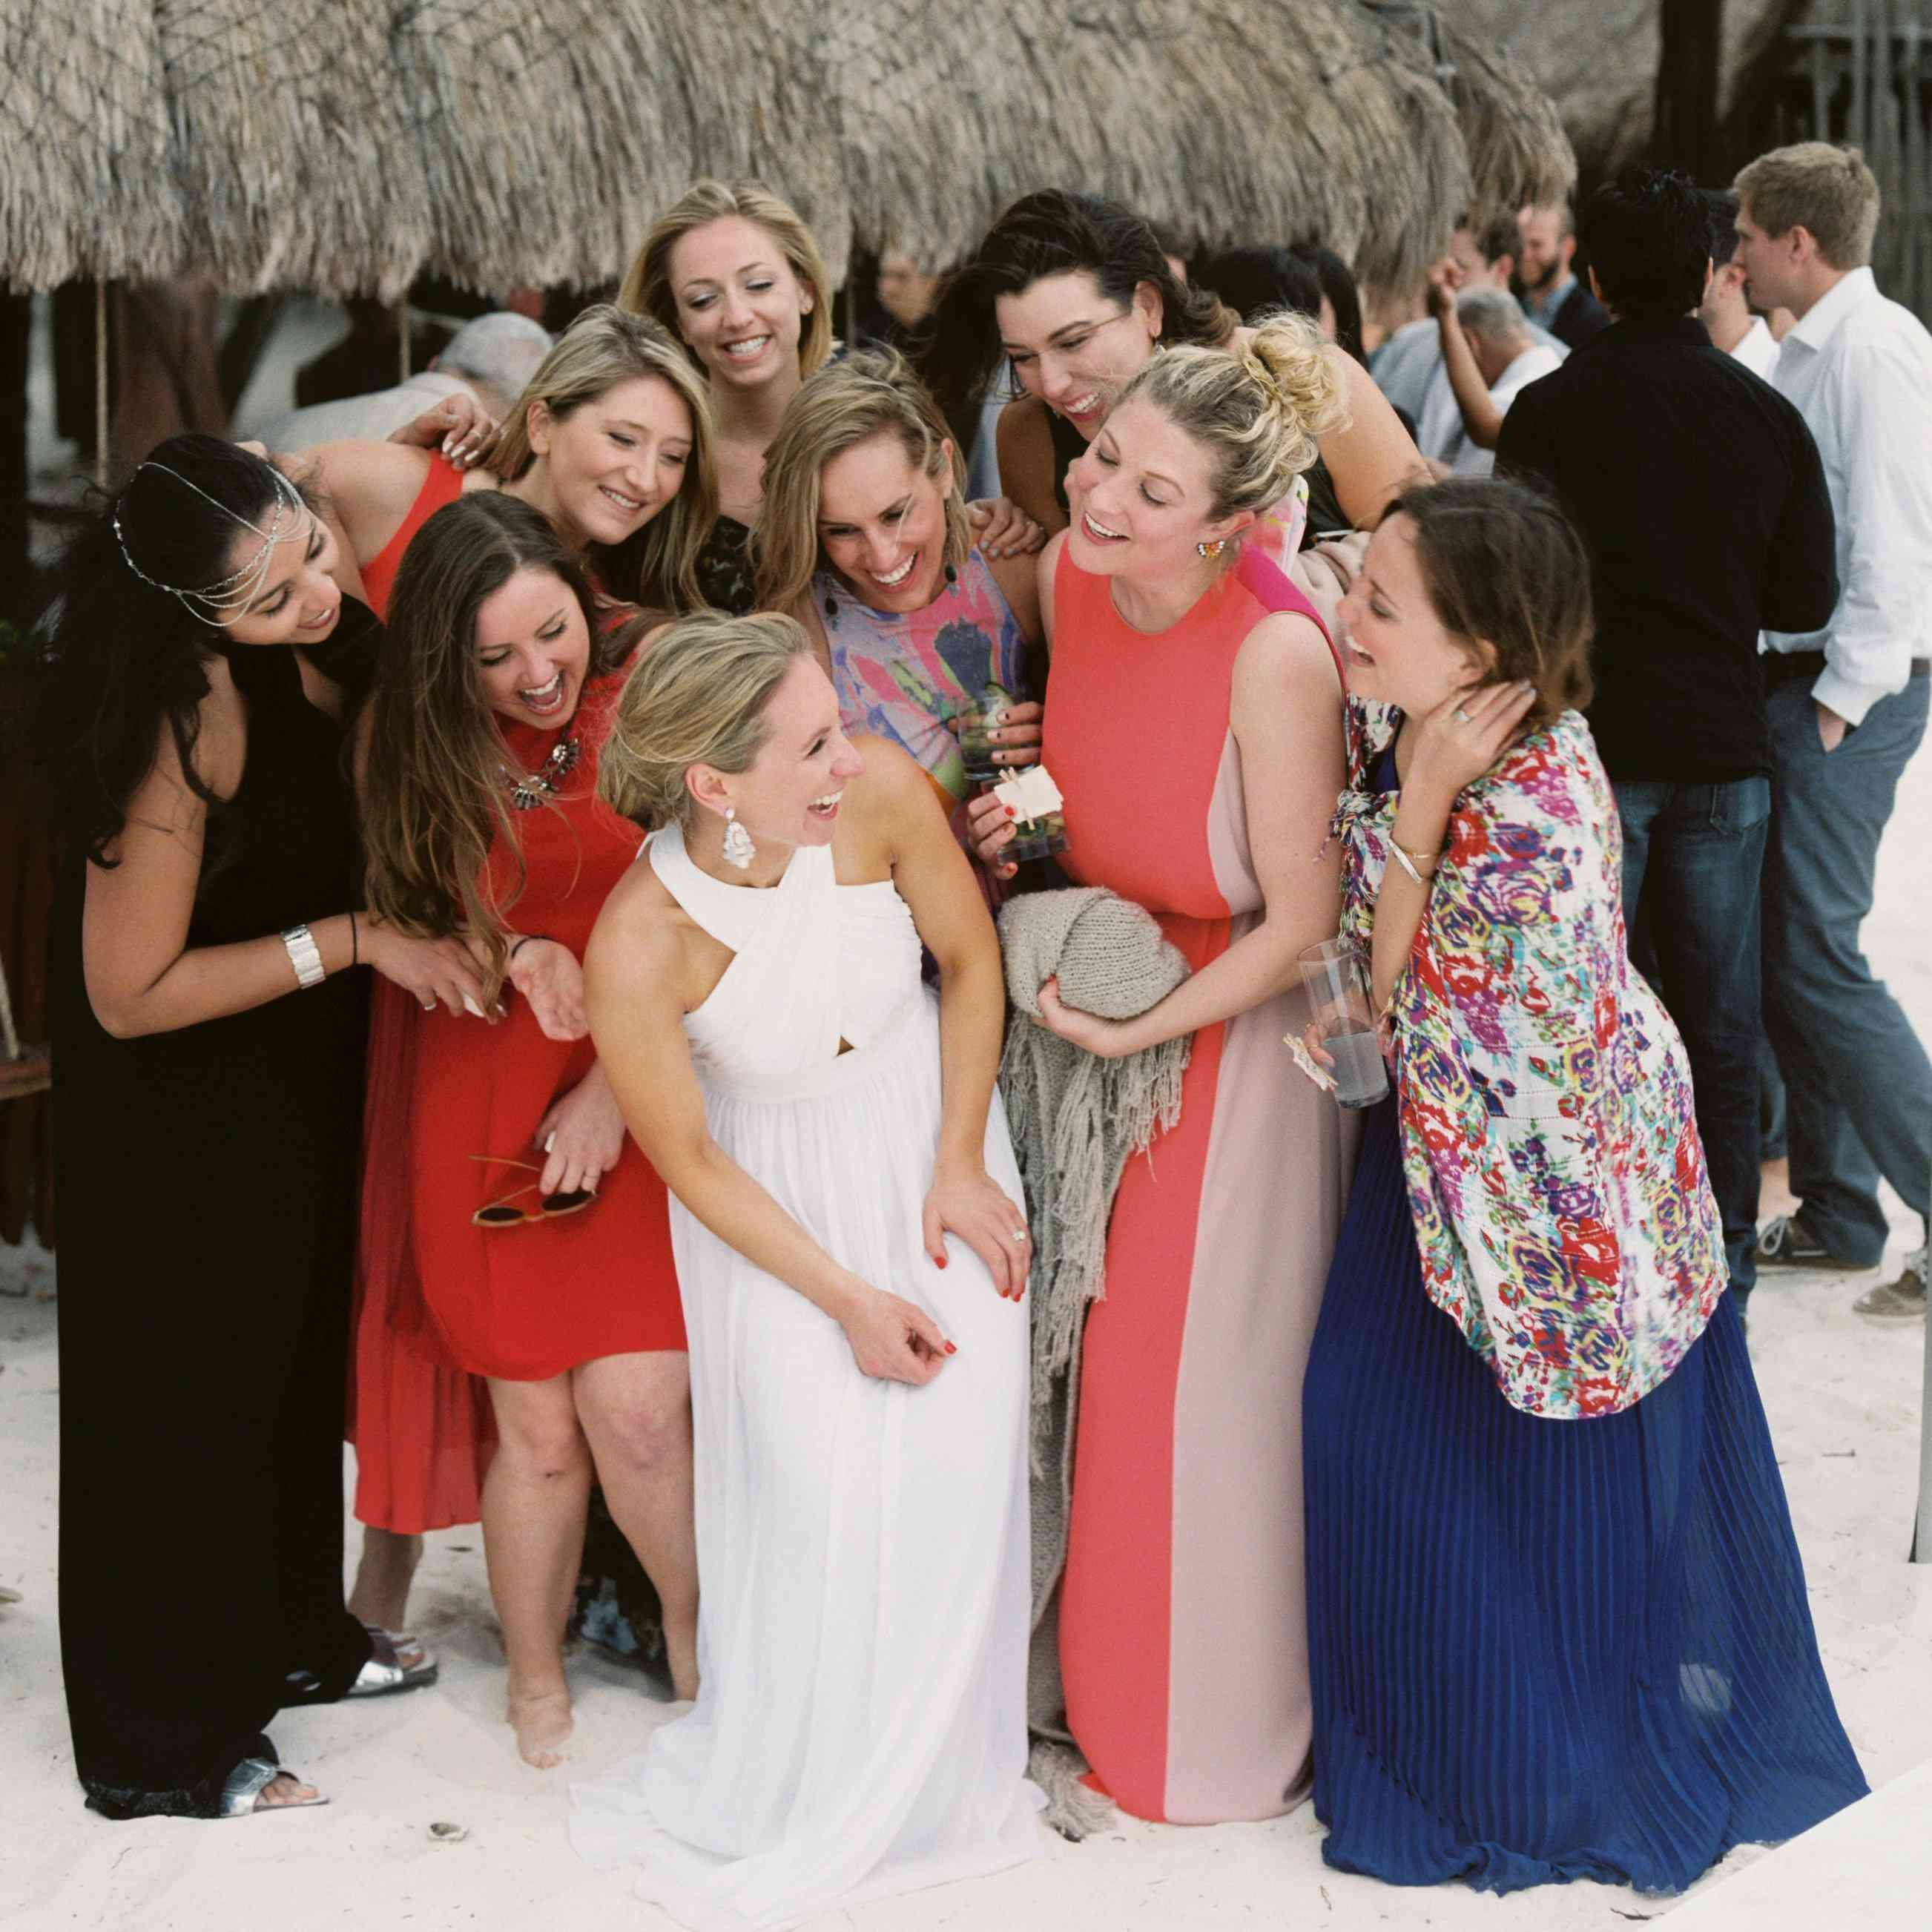 Dresscode For Wedding.Here S What To Wear To A Tropical Elegant Wedding